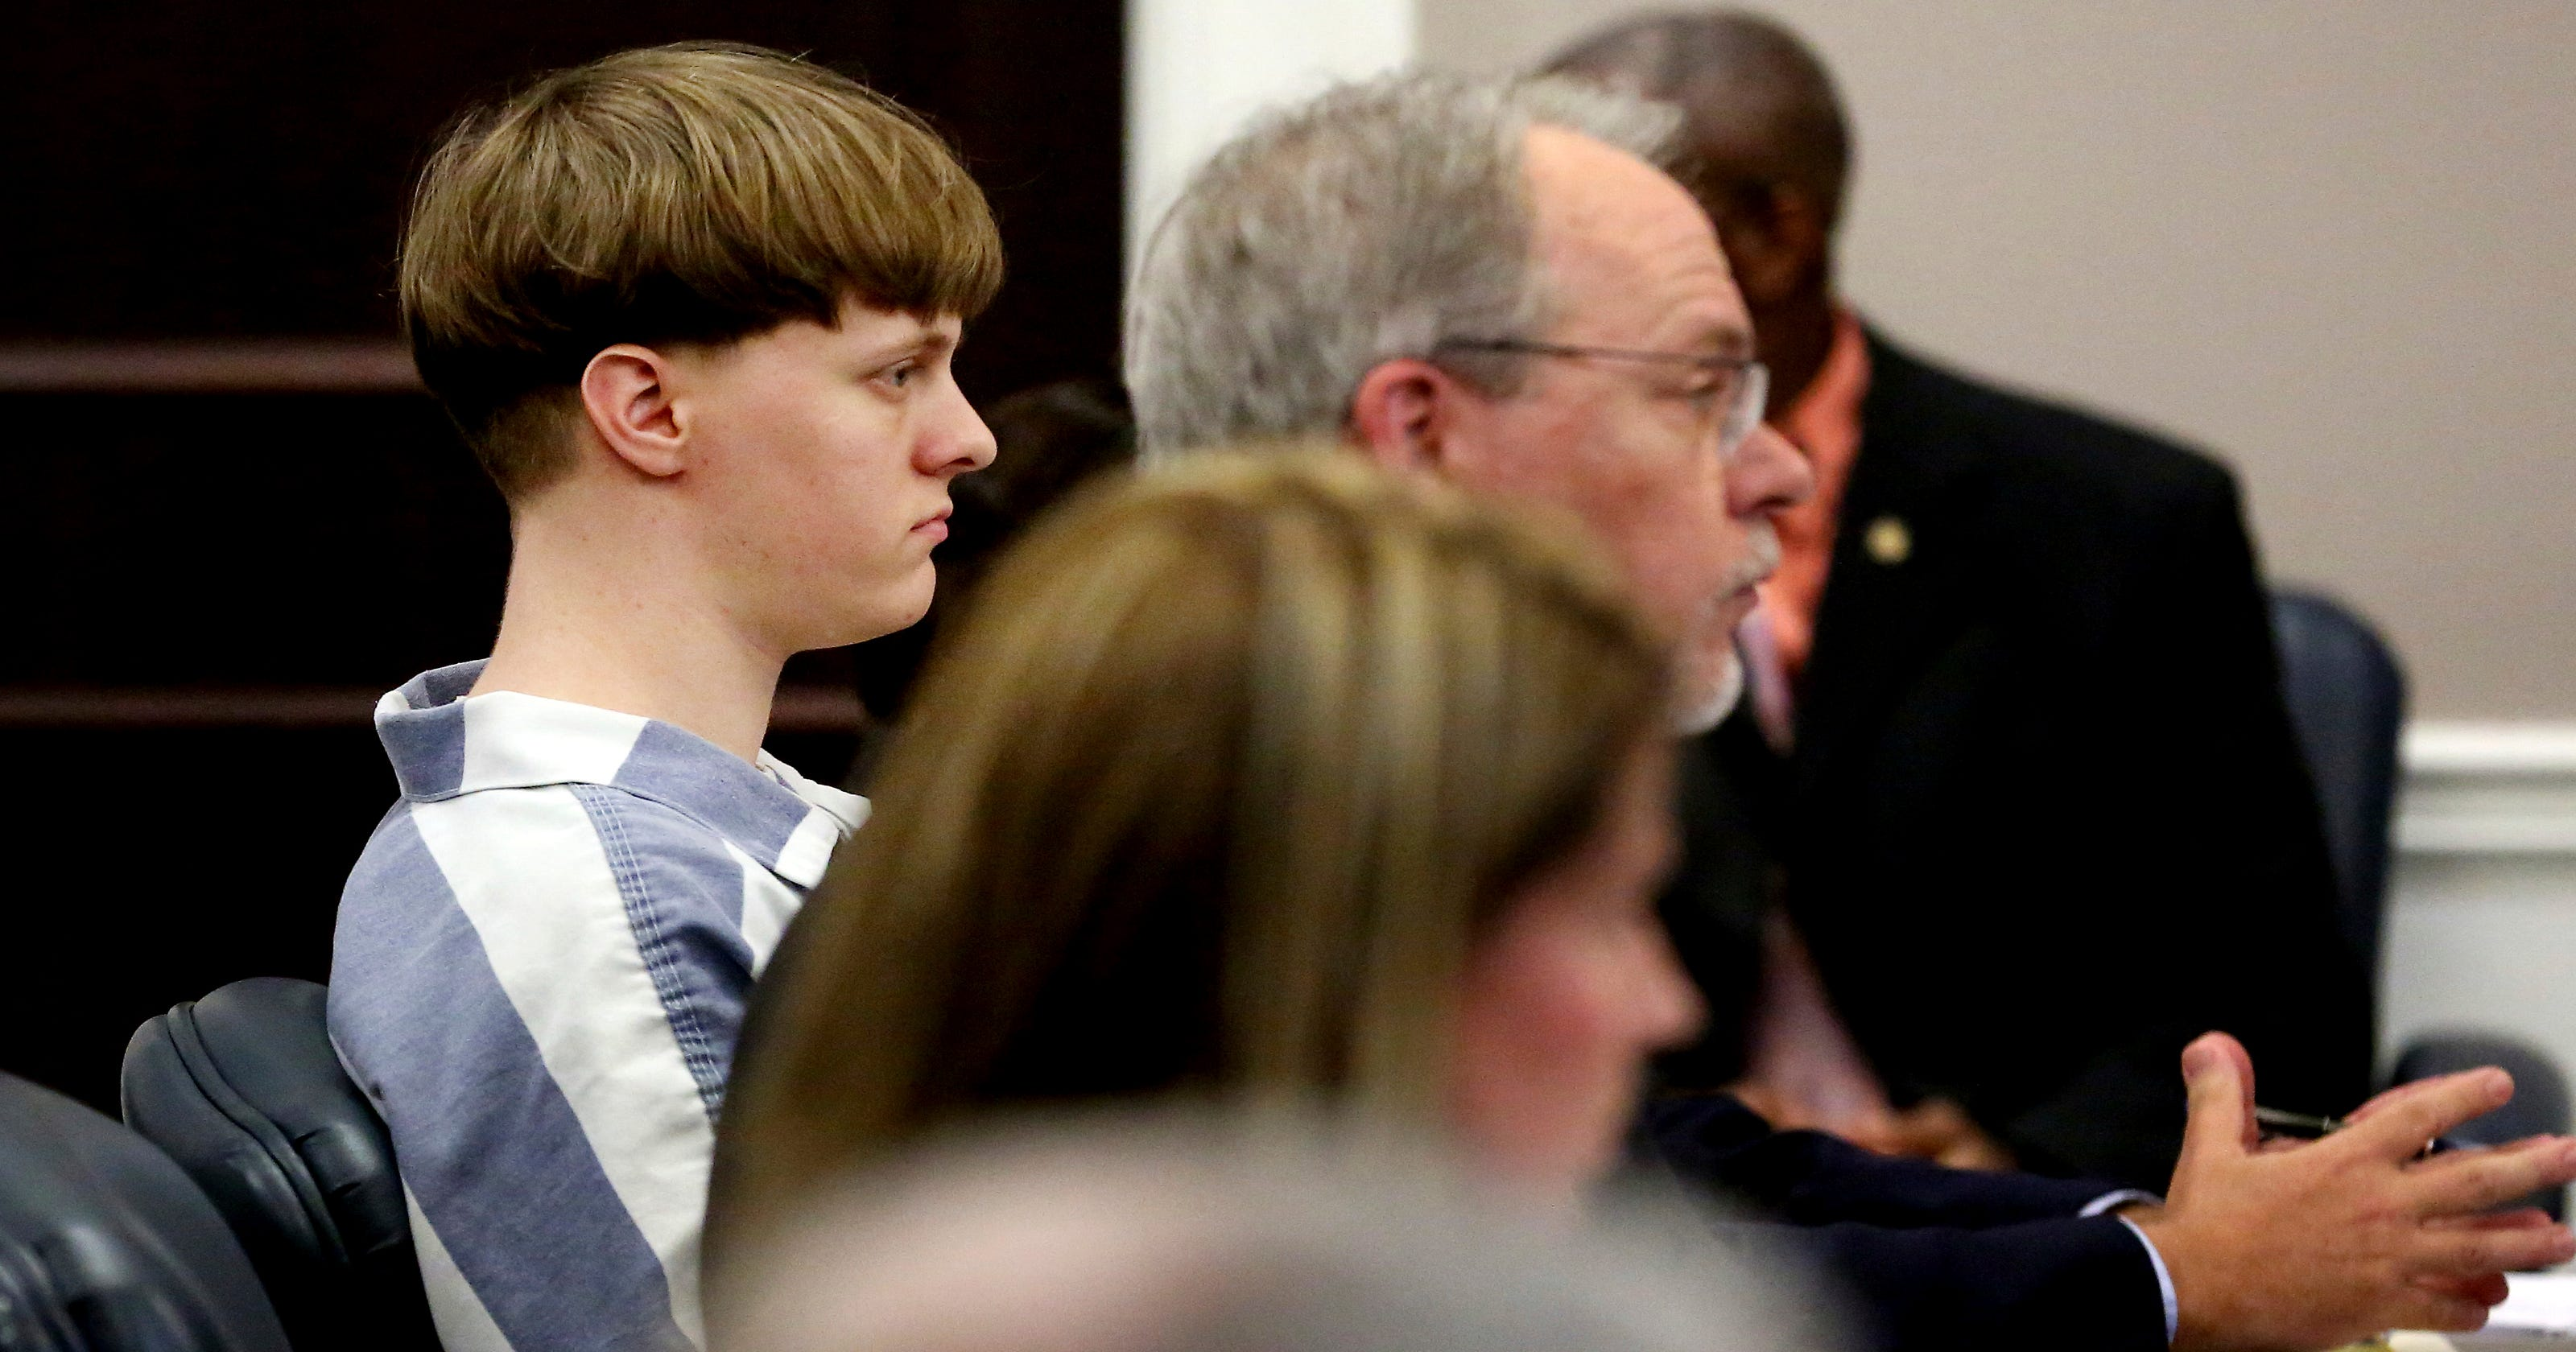 Charleston Church Shooter On Federal Death Row In Terre Haute